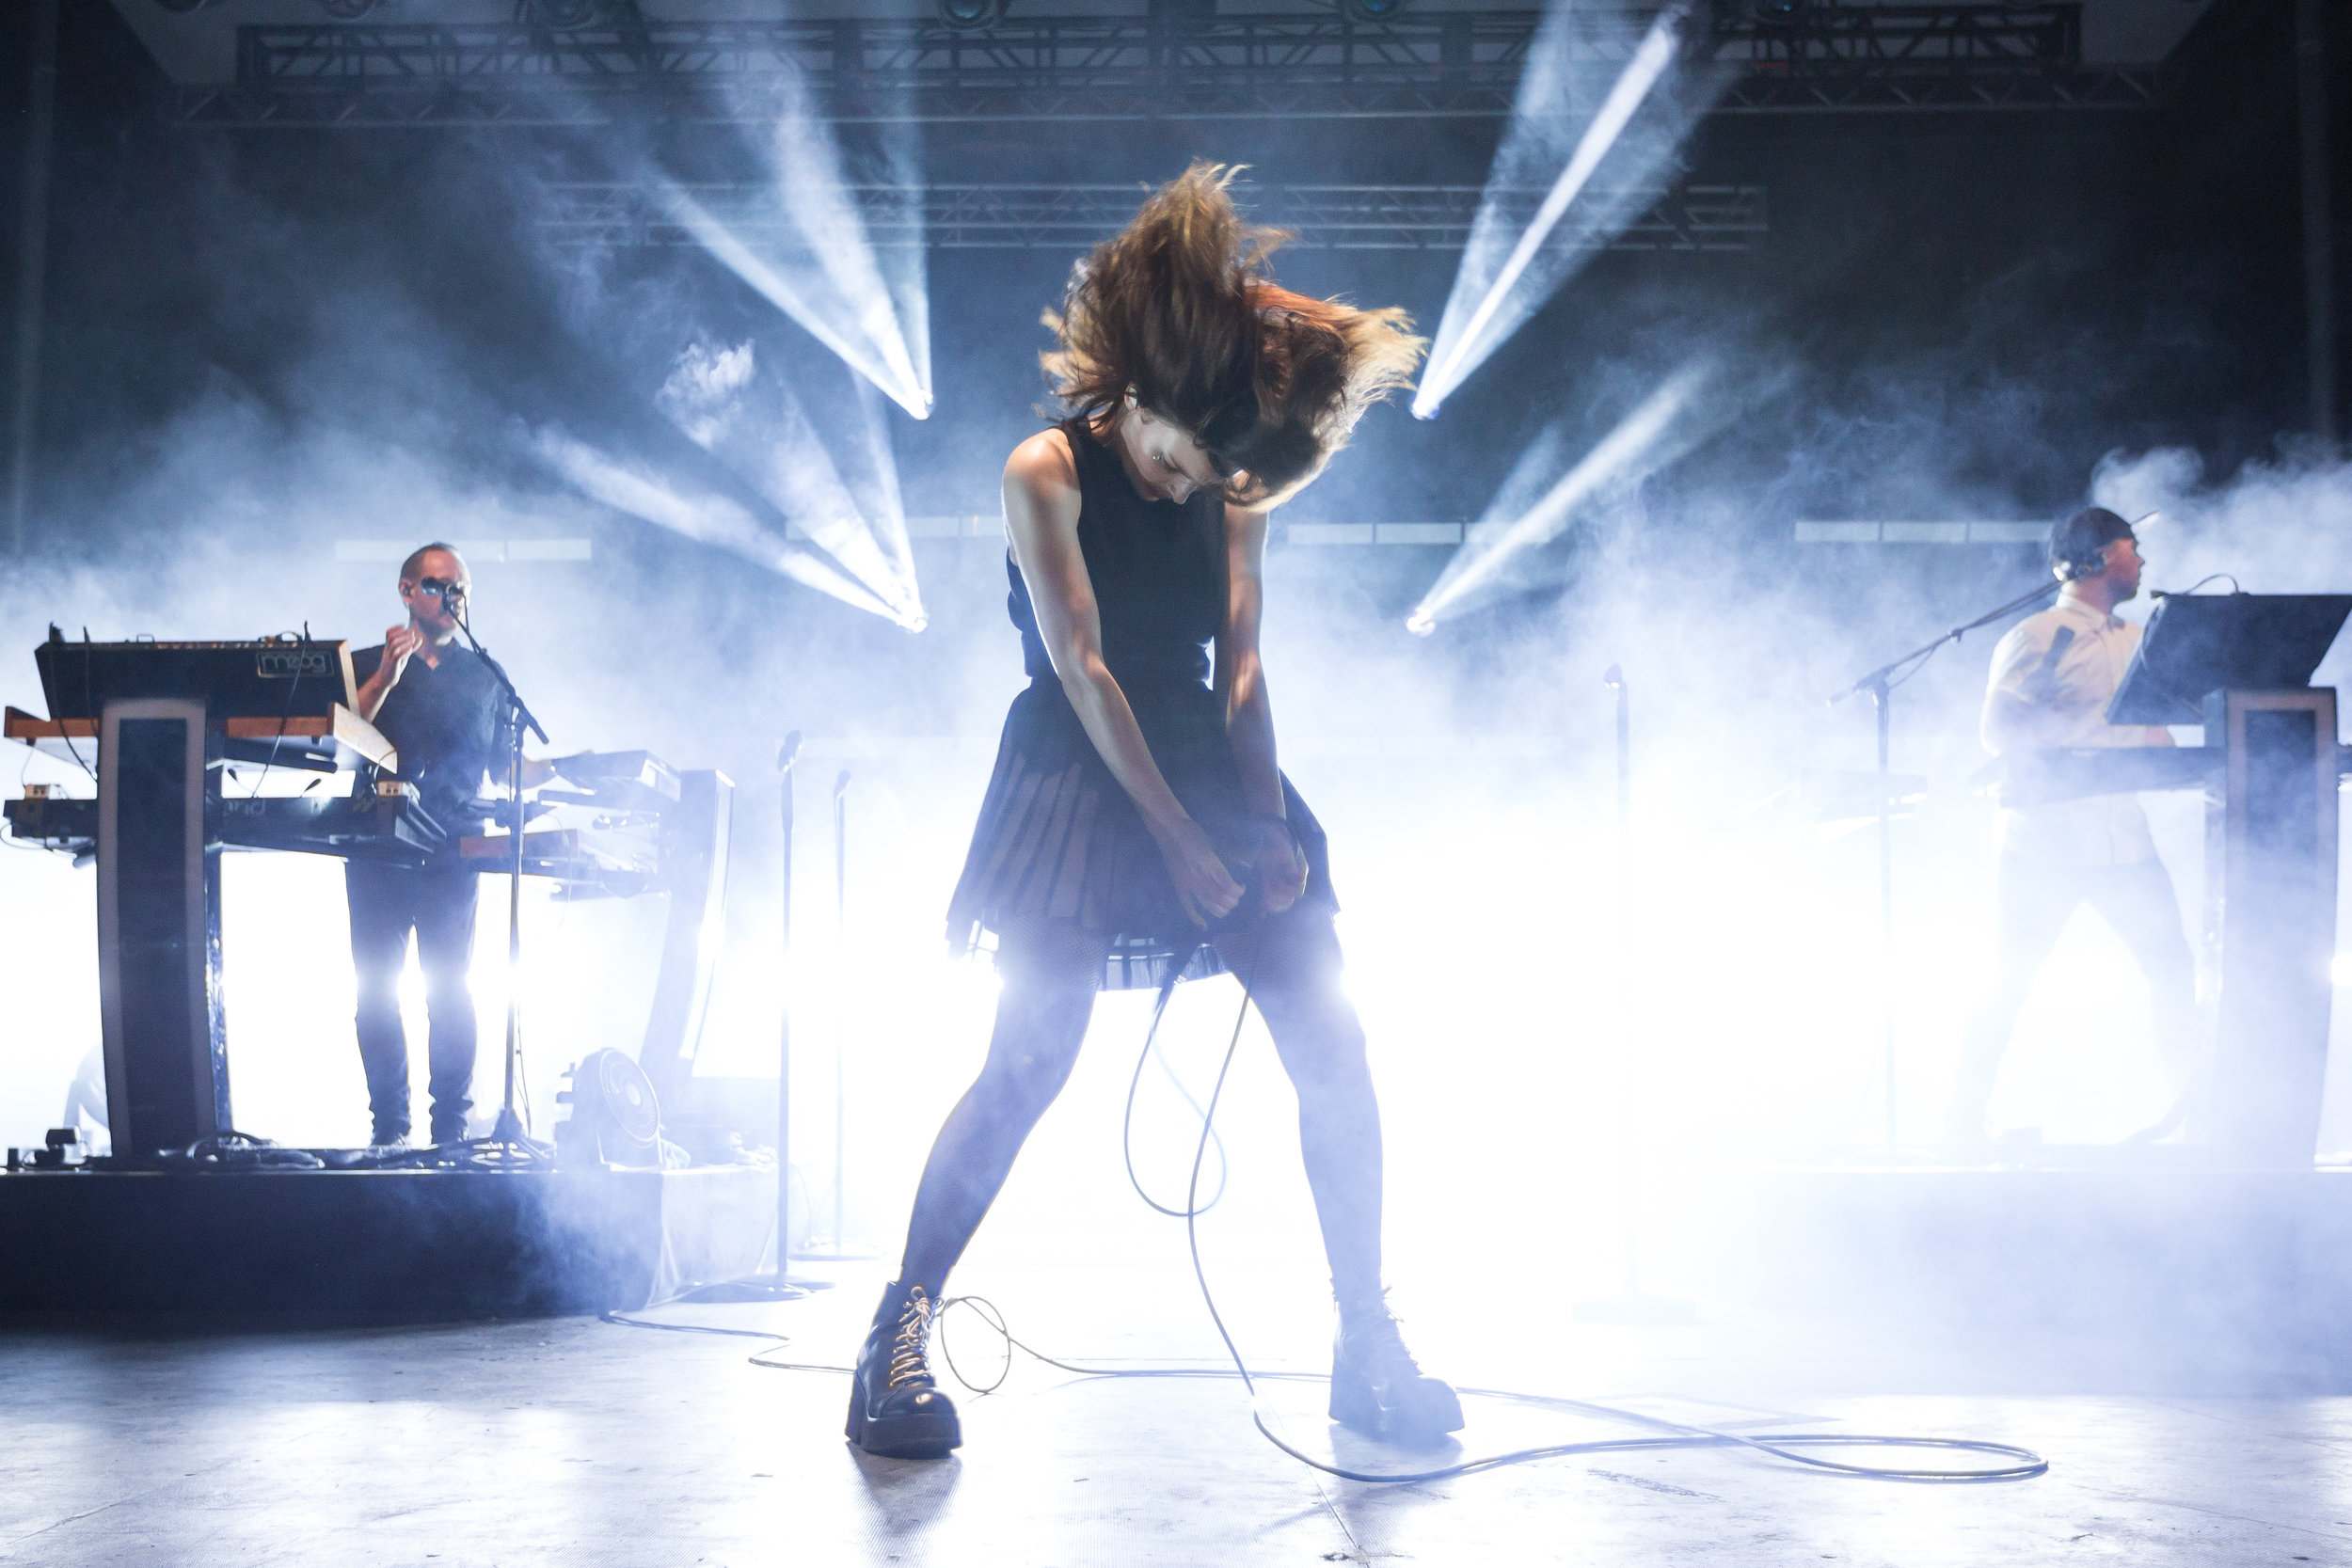 Lauren Mayberry, lead vocals for Chvrches, a Scottish synthpop band, dances on stage on day one of Thrival Music Festival in Rankin on Friday September 23, 2016.